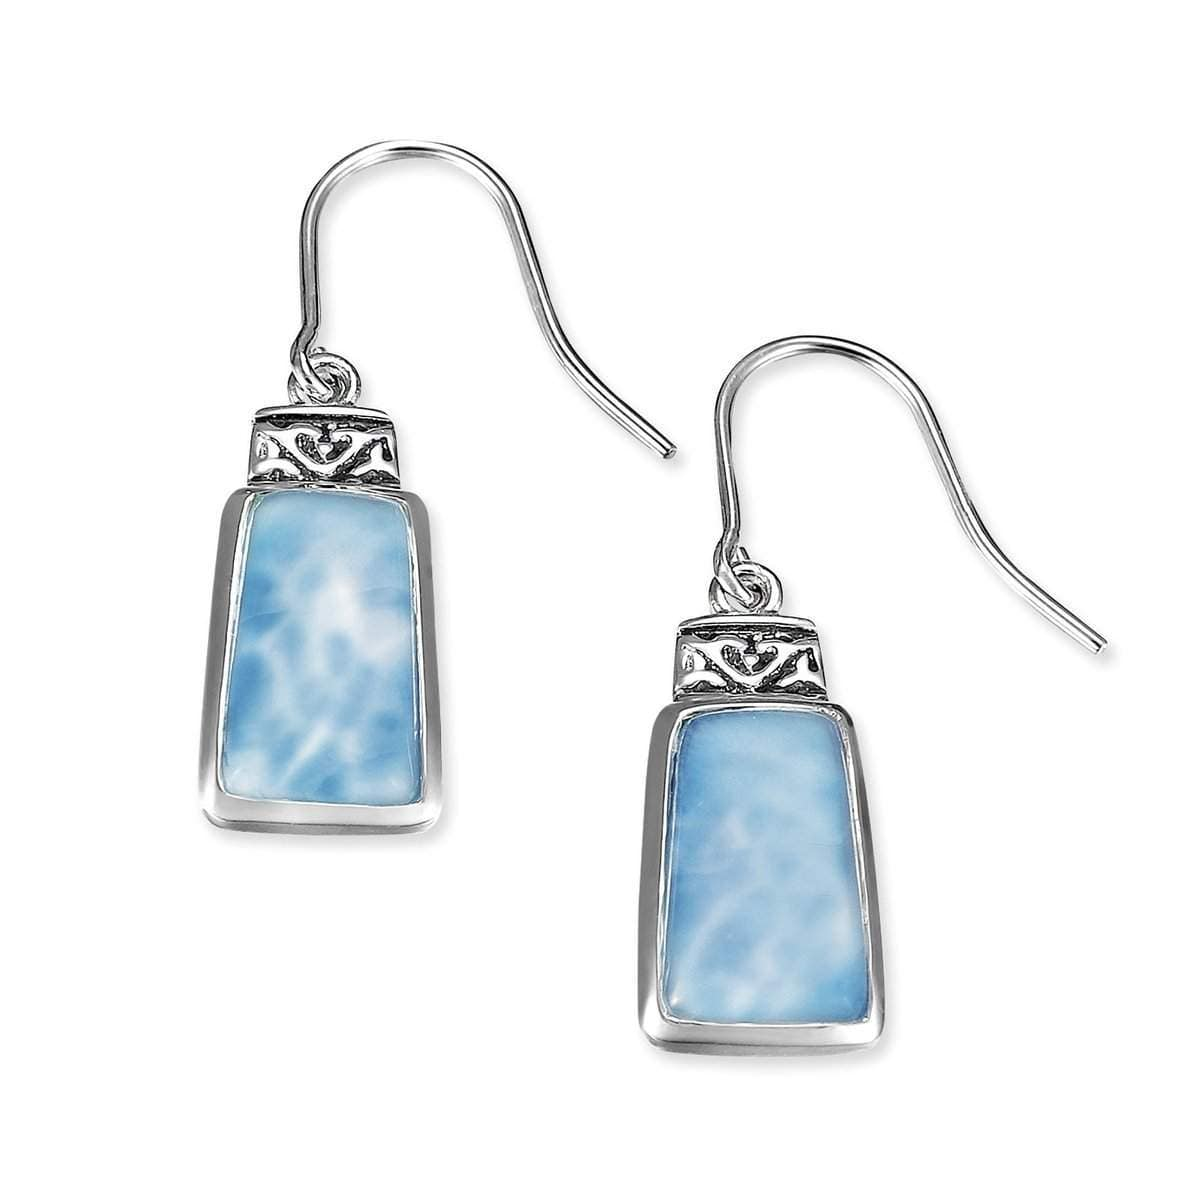 Hanna Earrings - Ehann00-00 - Marahlago Larimar